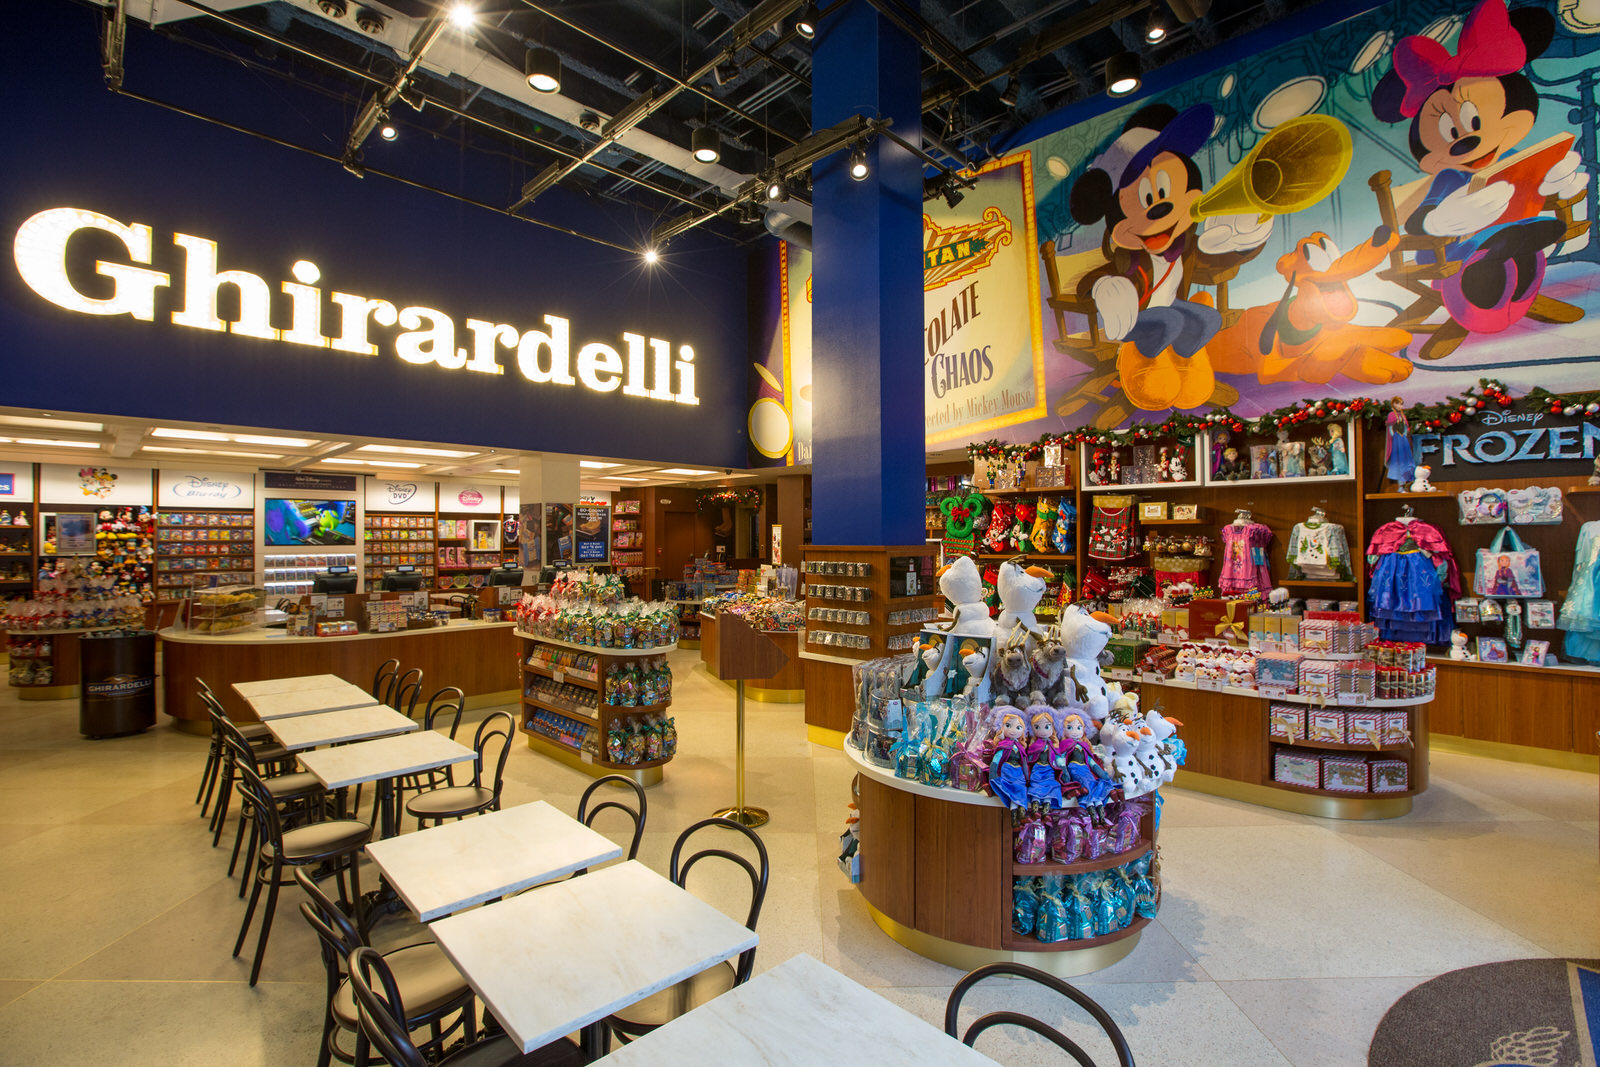 Ghirardelli Hollywood1